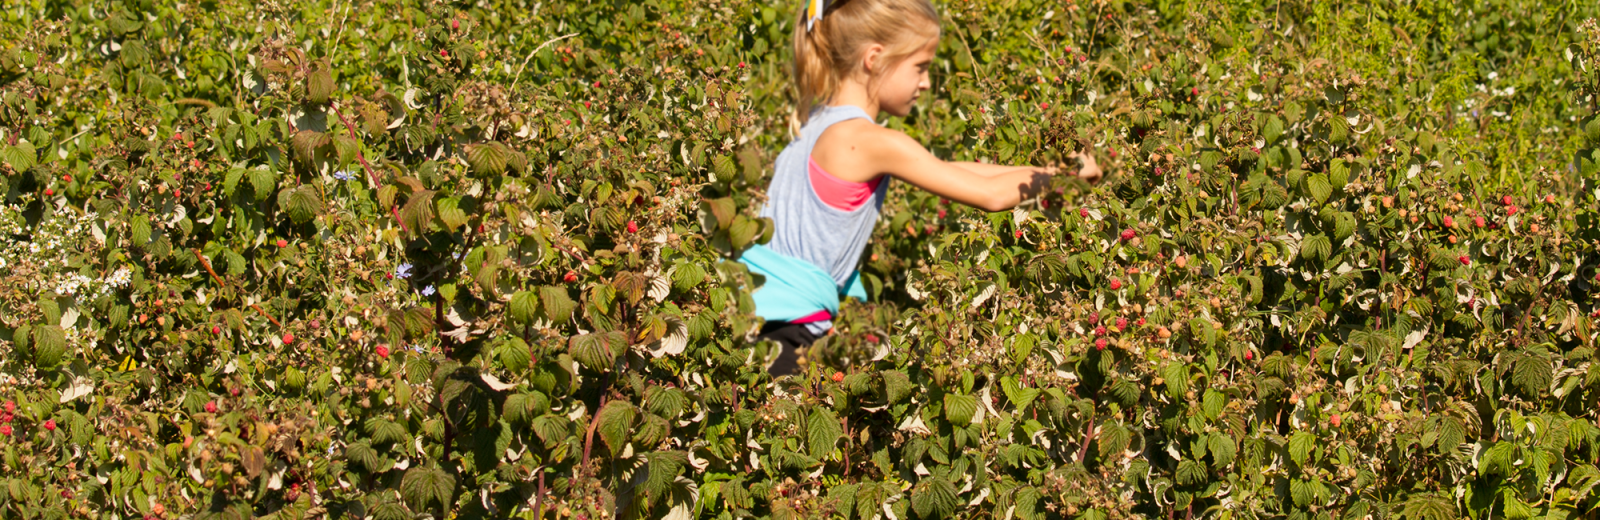 nieman-markets-you-pick-raspberries